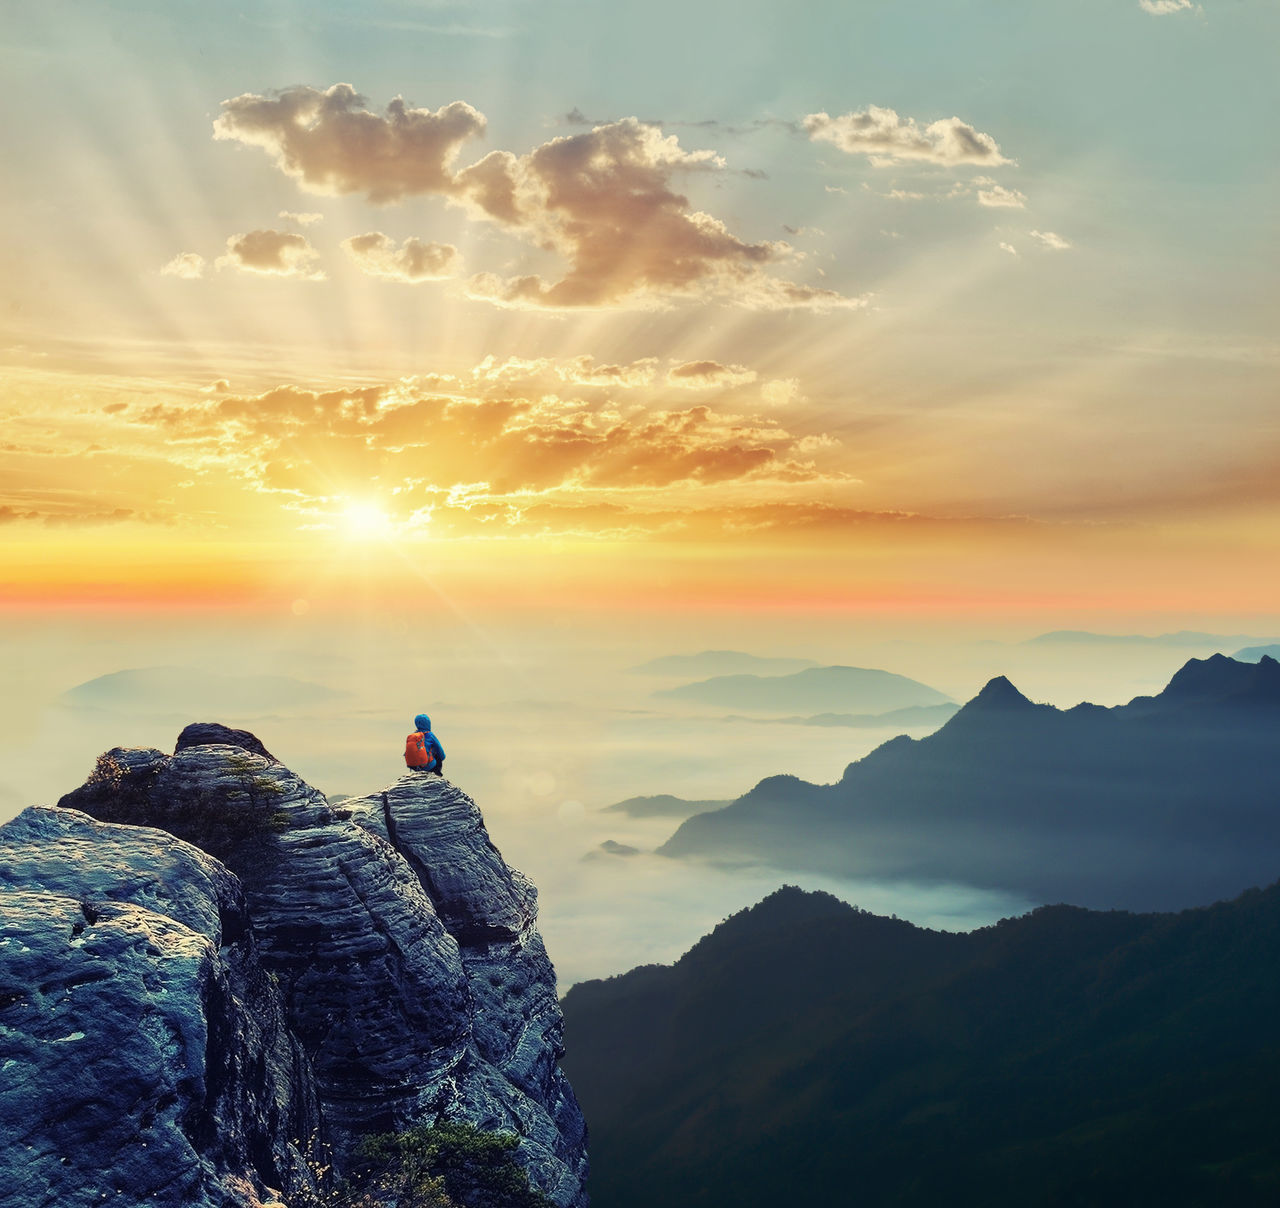 Adult Adults Only Adventure Awe Beauty In Nature Cloud - Sky Freshness High Up Independence Landscape Mountain Mountain Peak Nature One Man Only One Person Orange Color Outdoors People Scenics Sky Sun Sunbeam Sunlight Sunset Tranquility